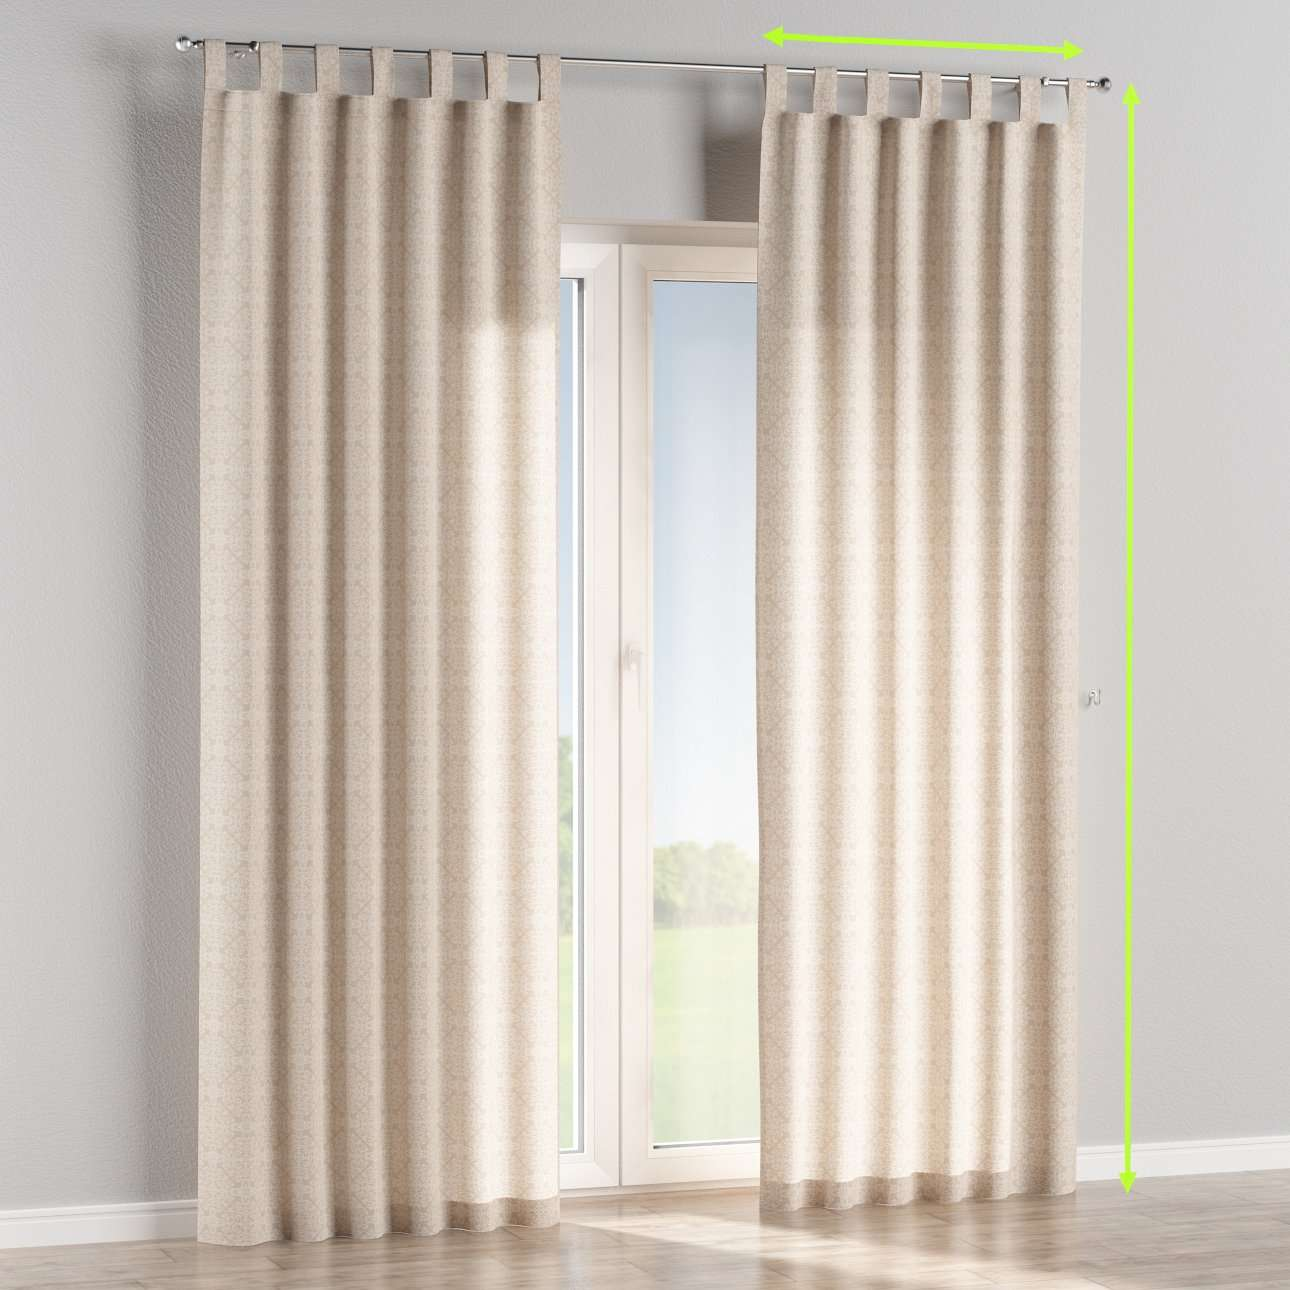 Tab top lined curtains in collection Flowers, fabric: 140-39